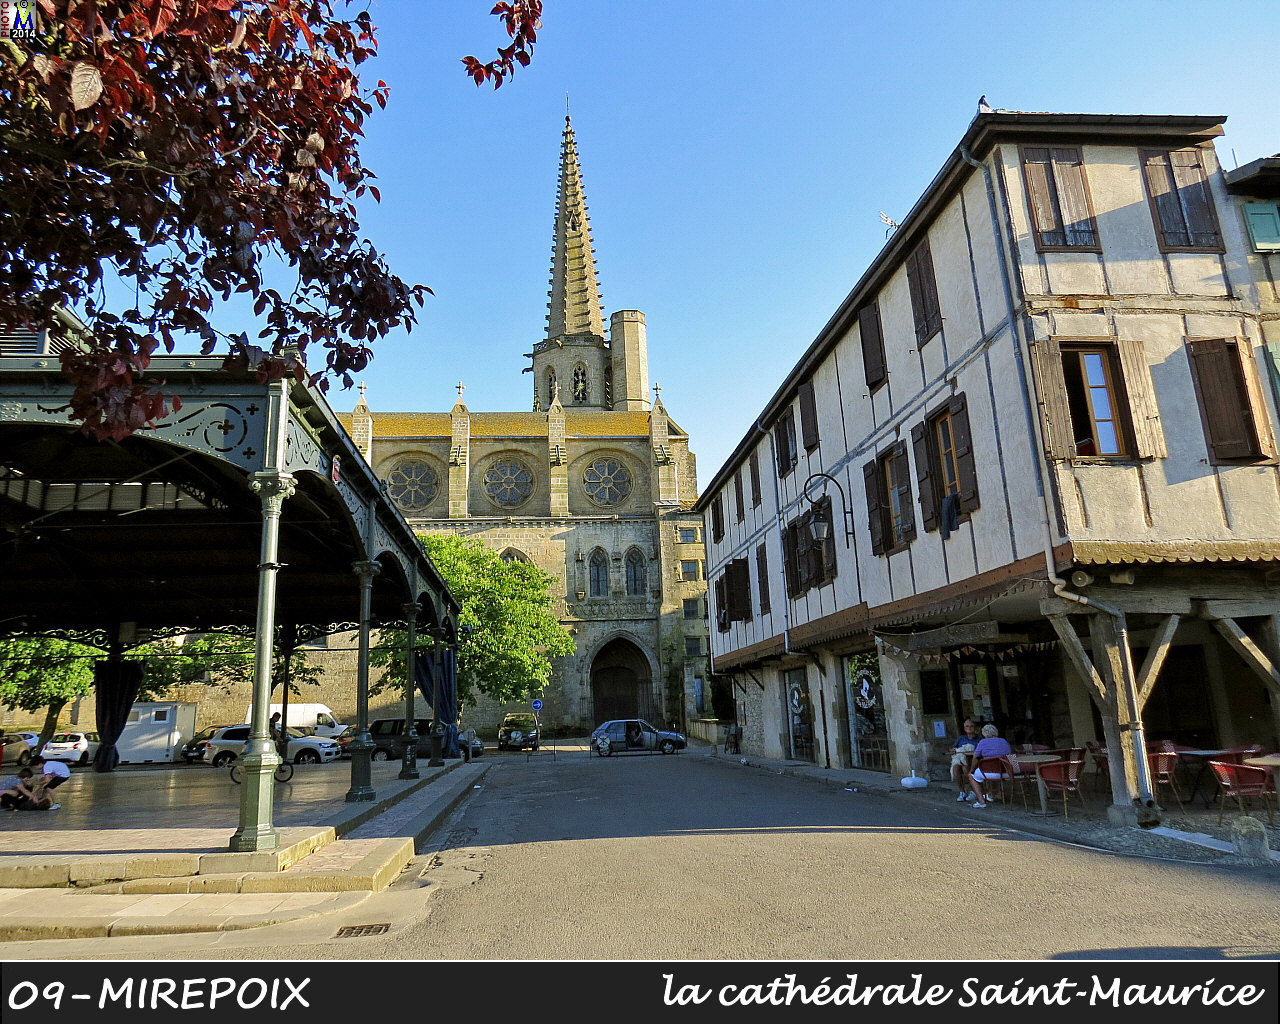 09MIREPOIX_cathedrale_104.jpg